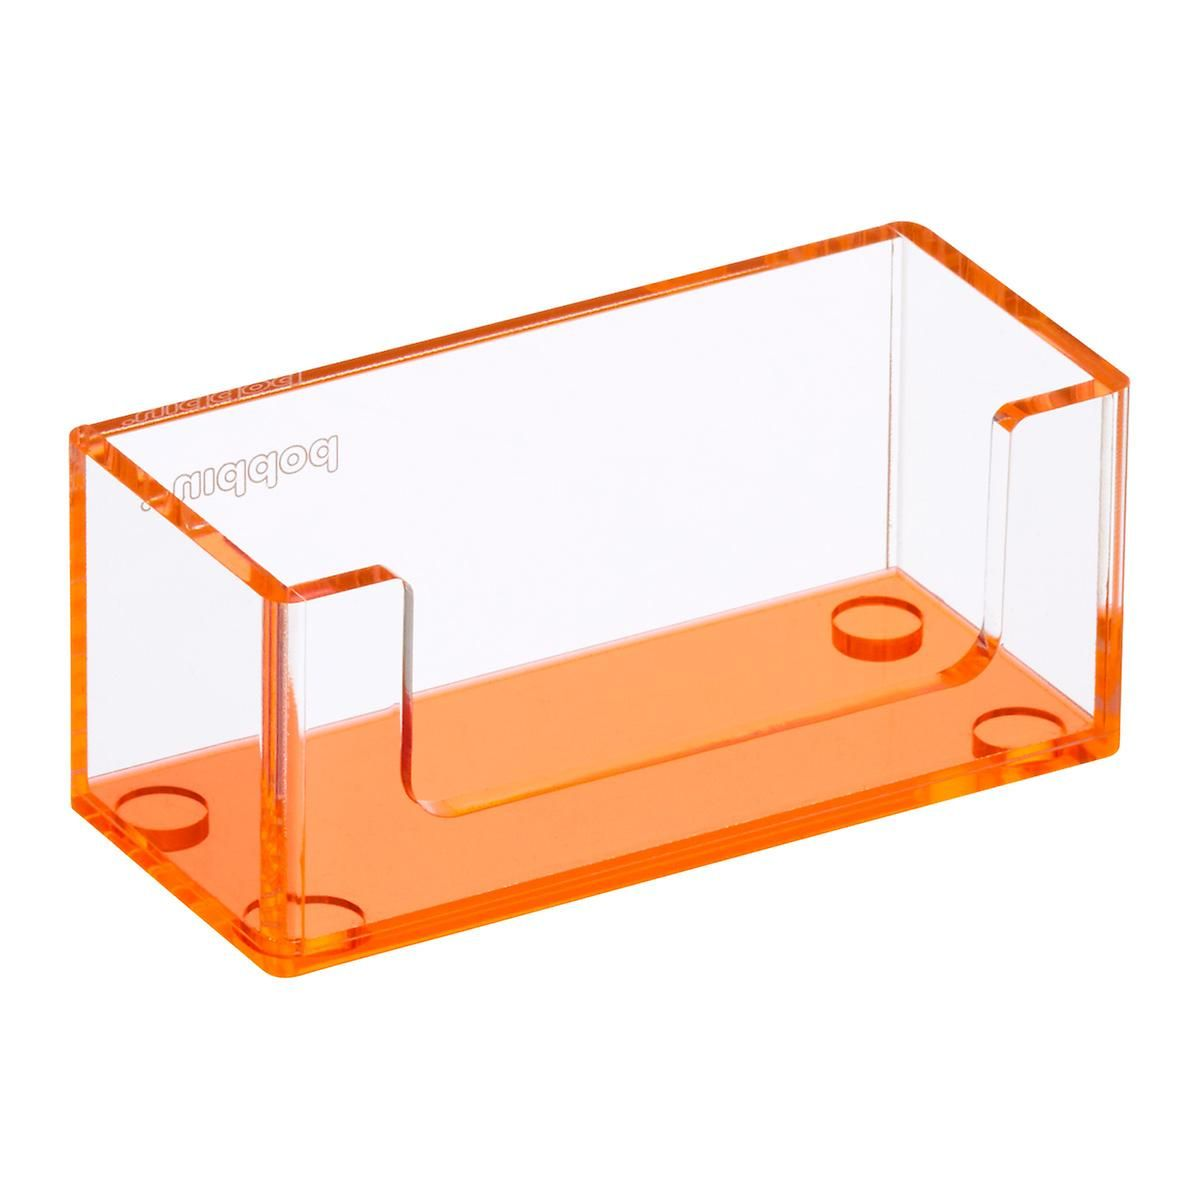 Neon Orange Poppin Acrylic Business Card Holder | card | Pinterest ...